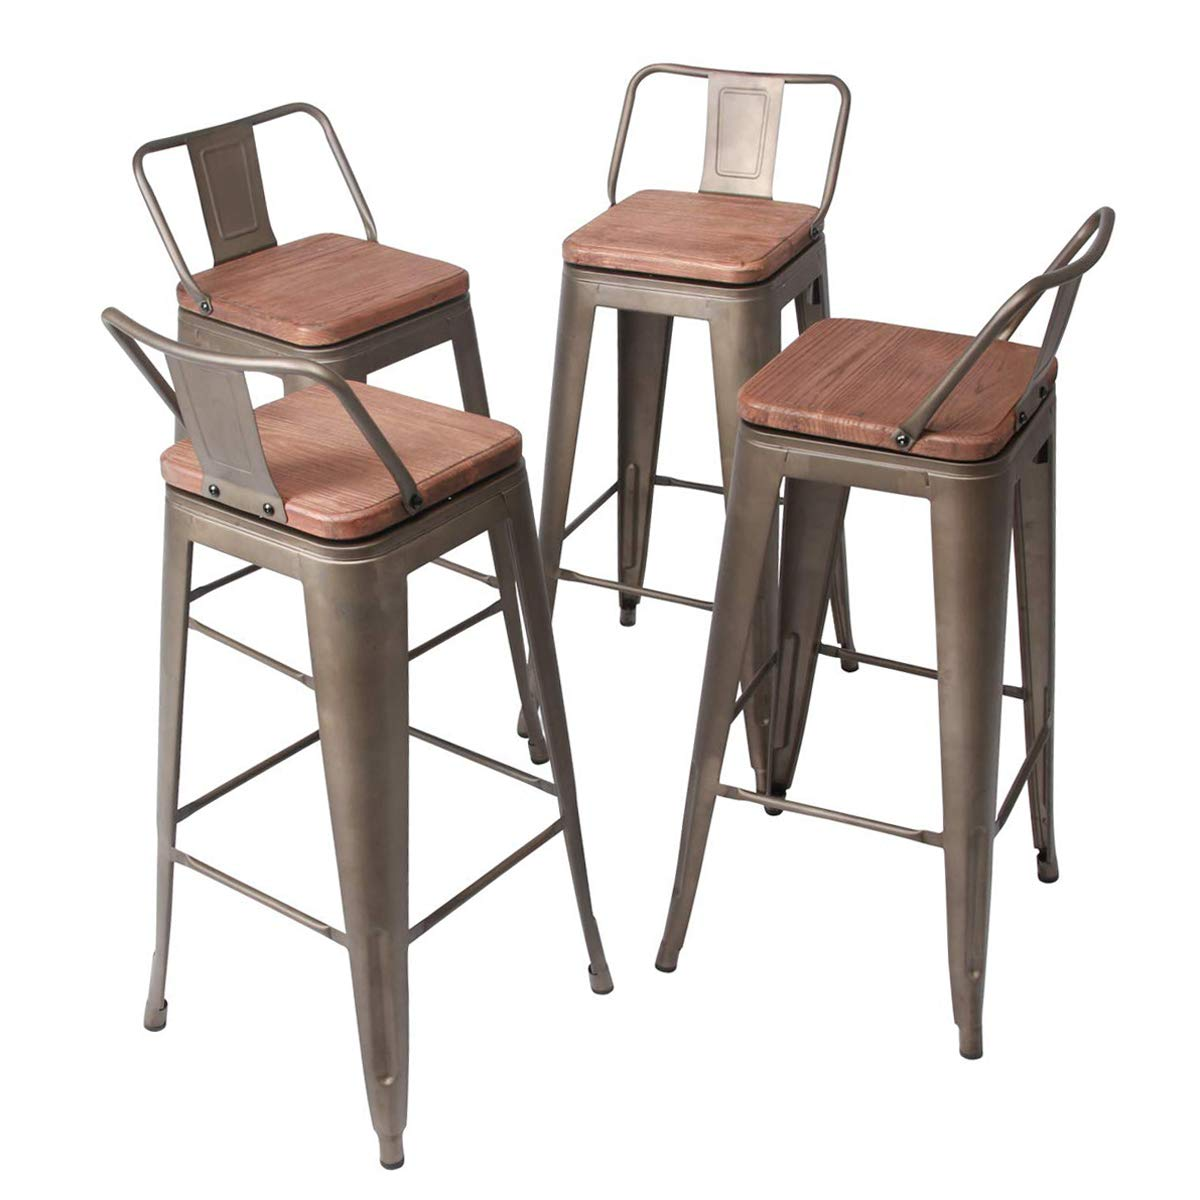 Magnificent Yongqiang Set Of 4 Swivel Bar Stools 30 Inch Metal Barstools Indoor Outdoor Kitchen Counter Stool Dining Chair Stool Rusty Wooden Seat Pabps2019 Chair Design Images Pabps2019Com